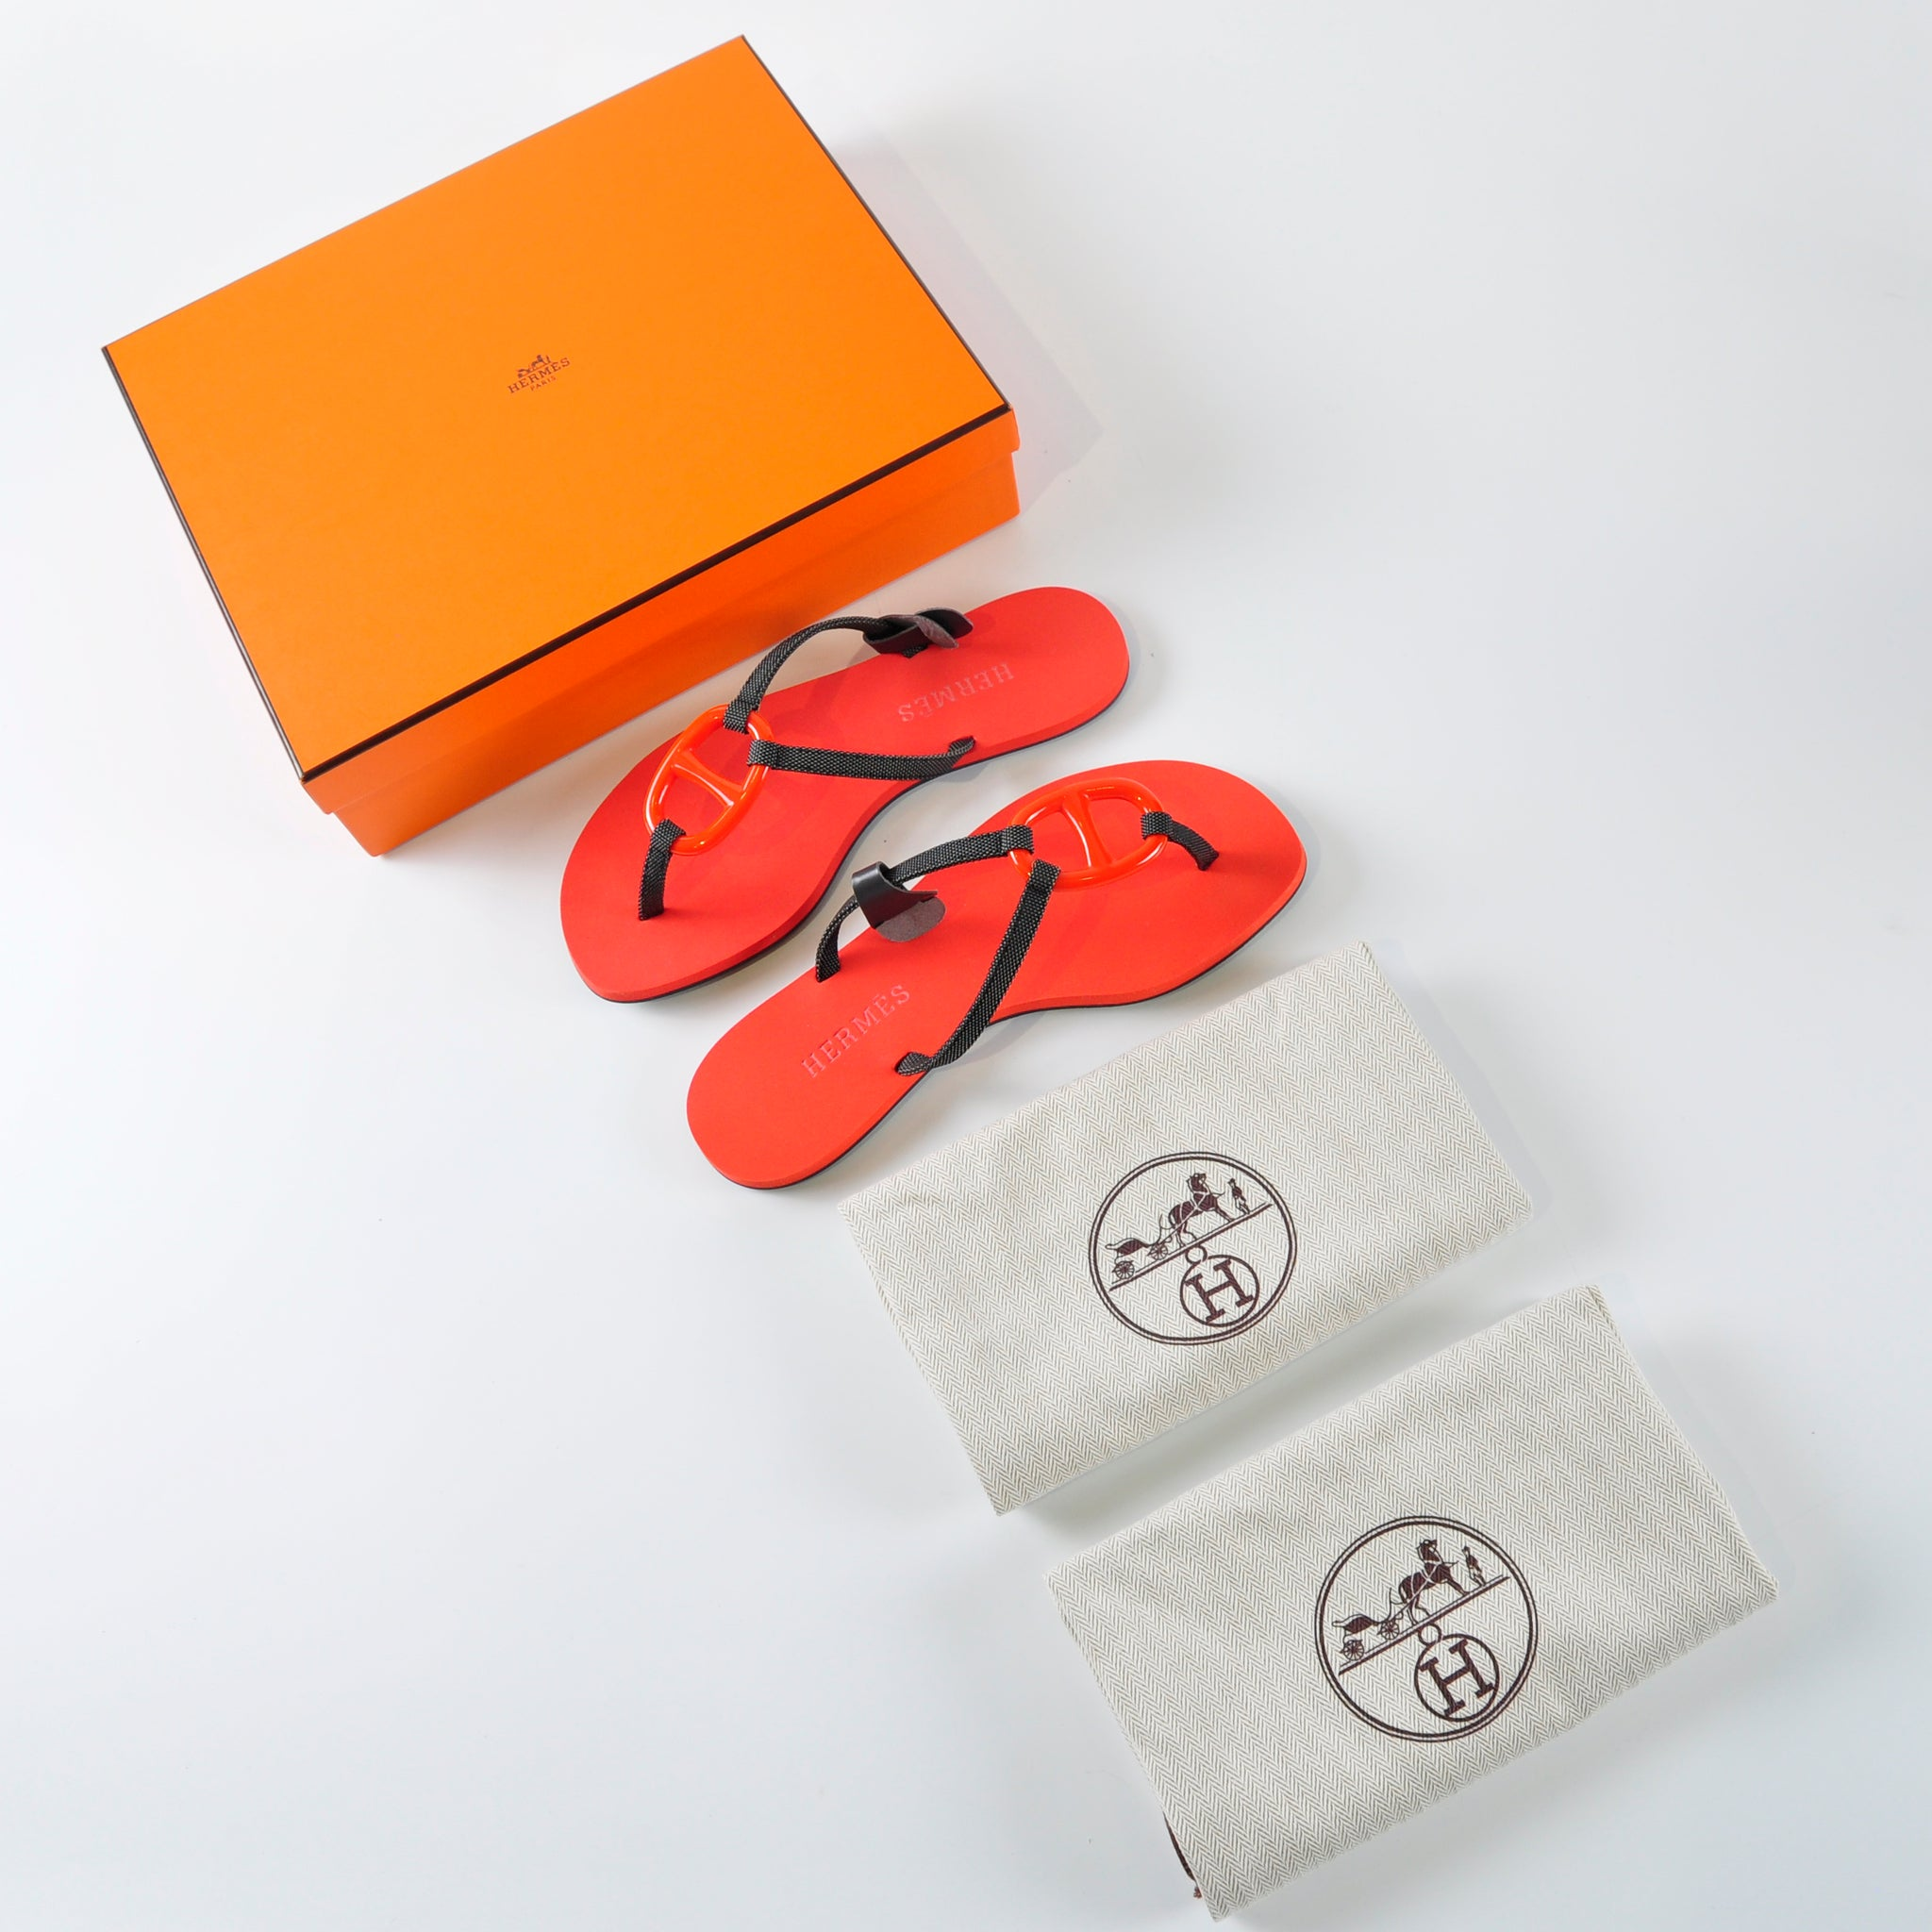 Hermès Sandal Kala Nera in Orange